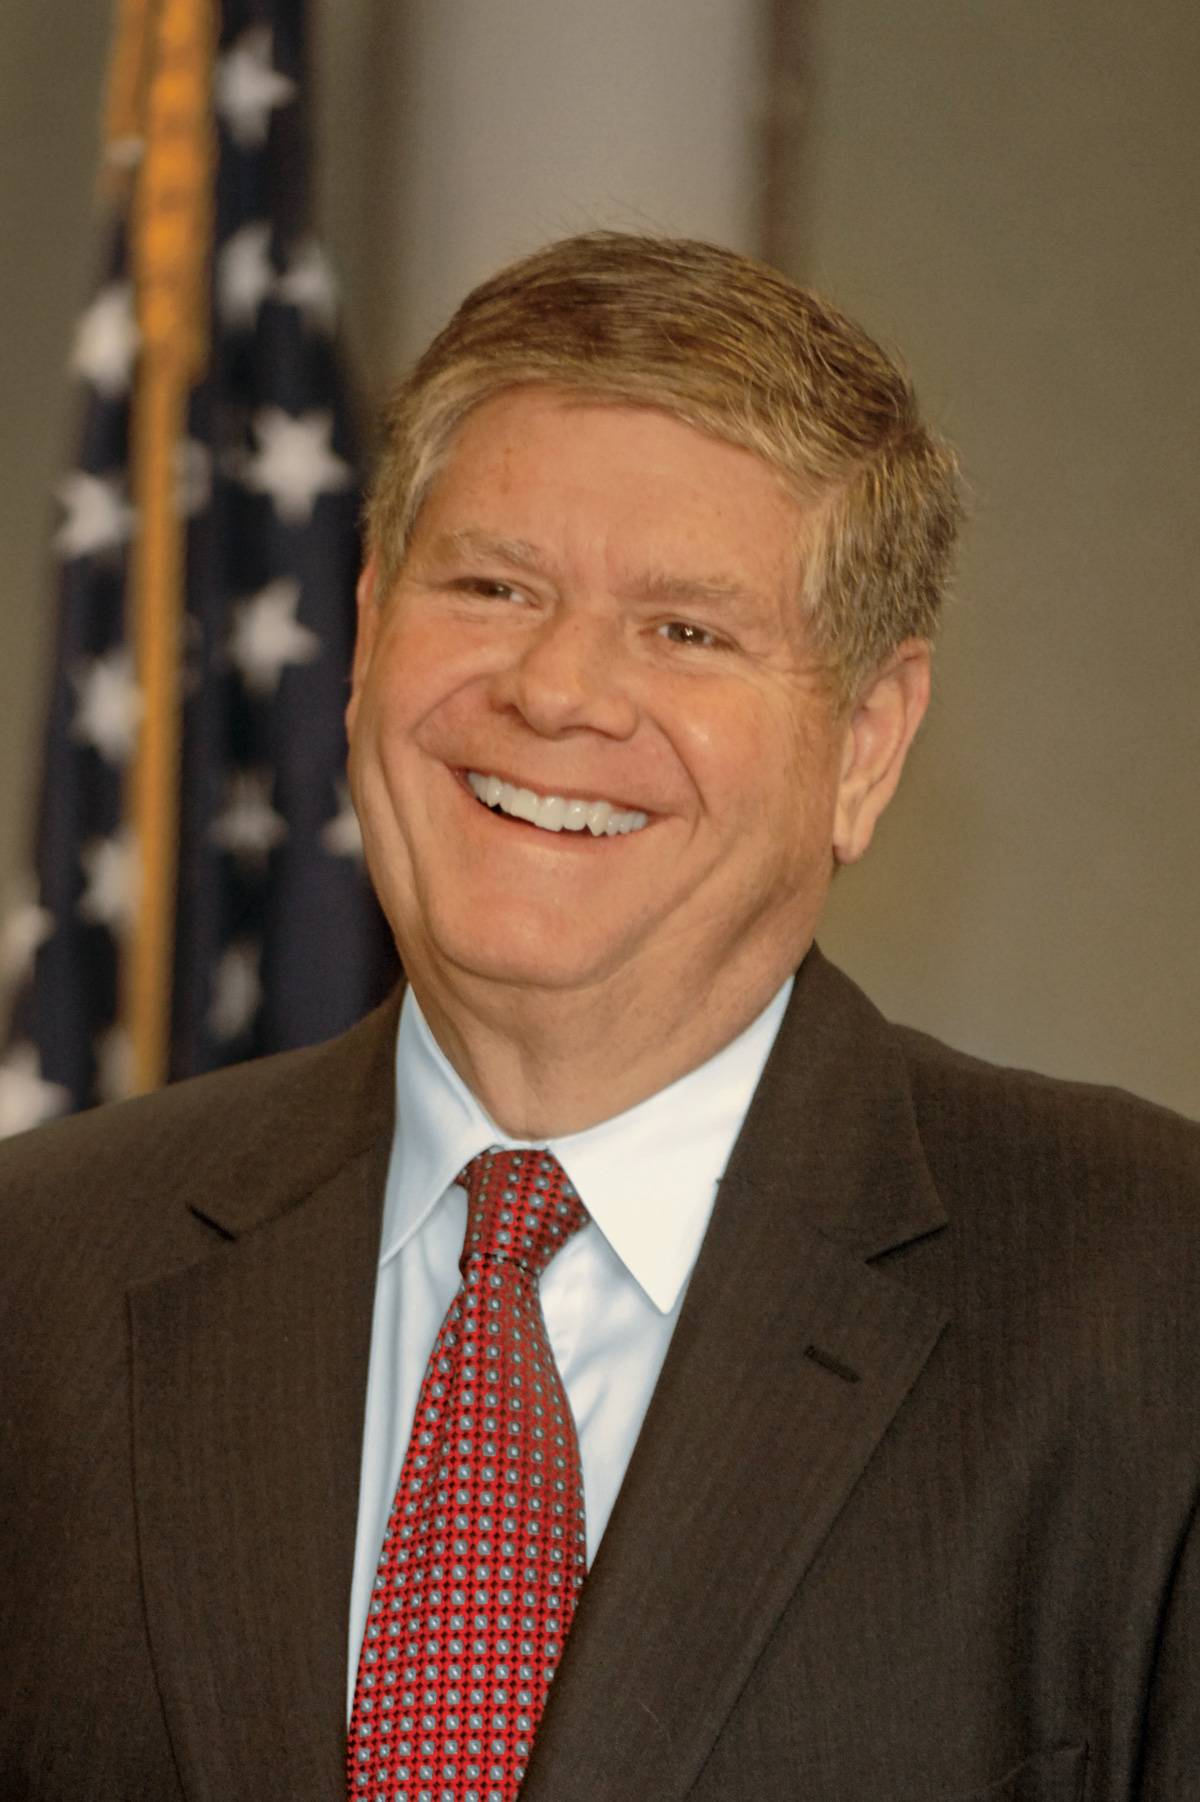 Jim Oberweis, running for 25th District Senate